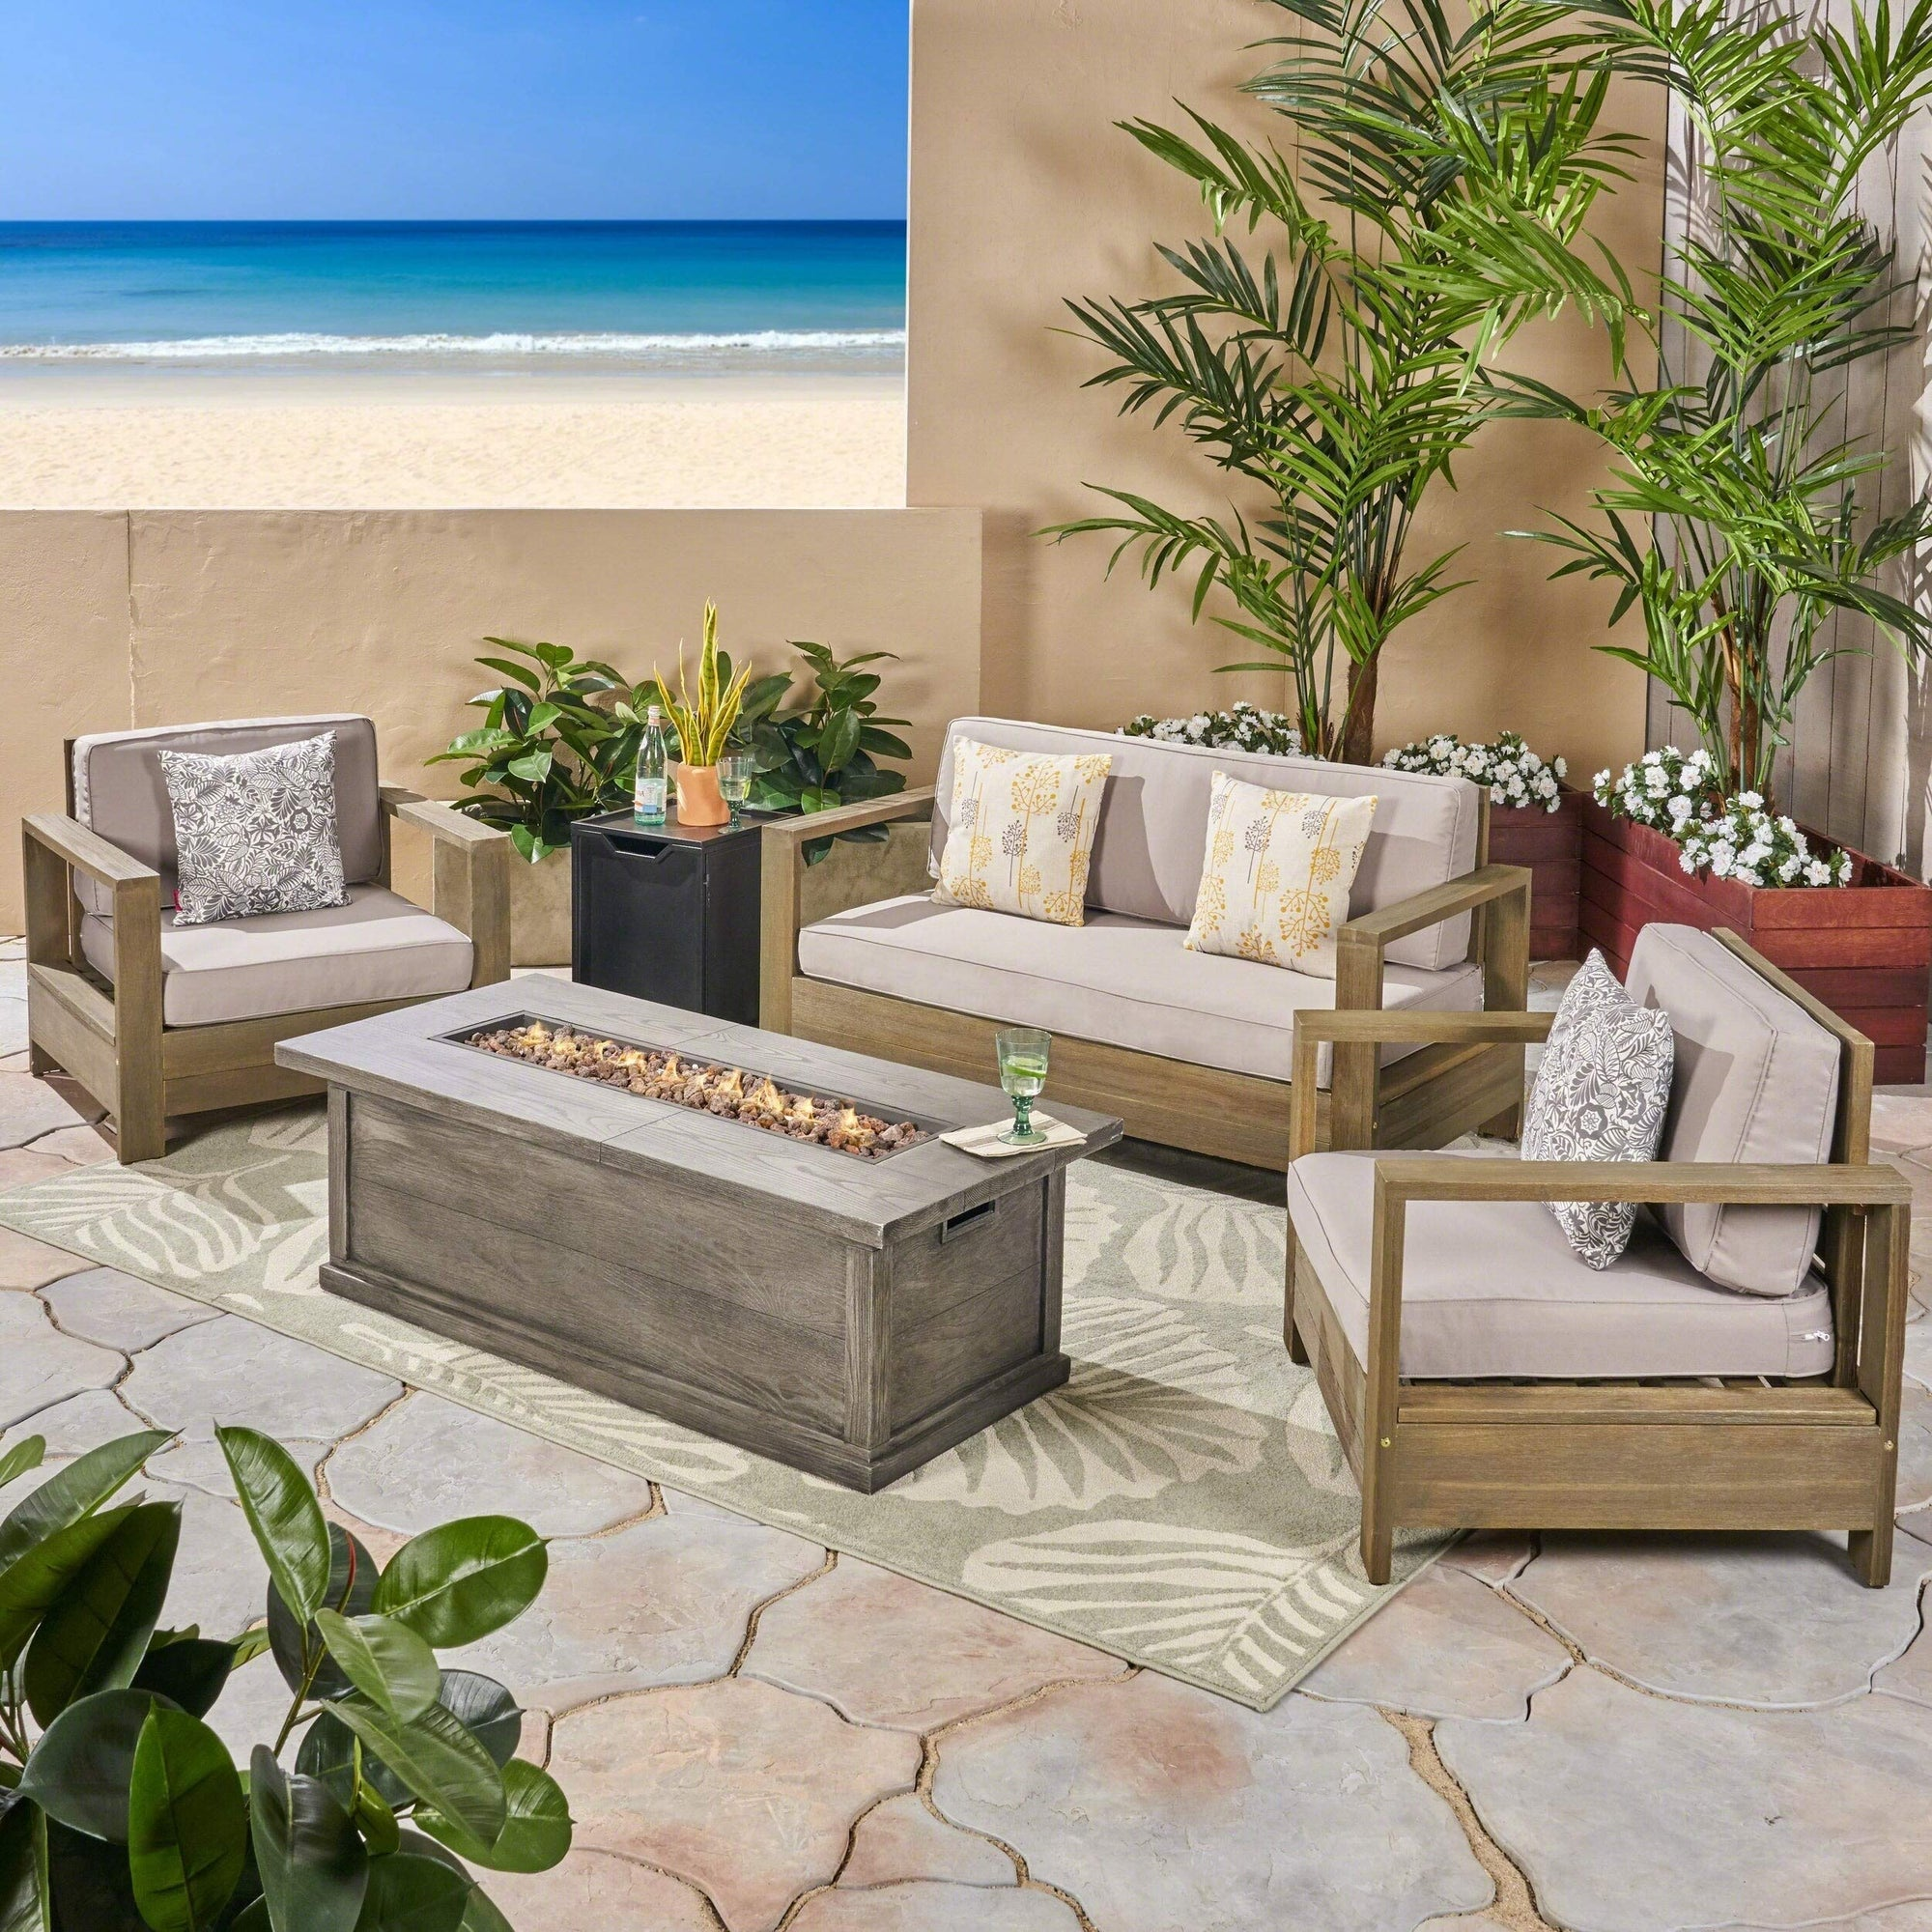 Christopher Knight Home Devon Outdoor 4-Seater Acacia Wood Chat Set with Fire Pit and Tank Holder by Christopher Knight Brushed Gray + Light Gray